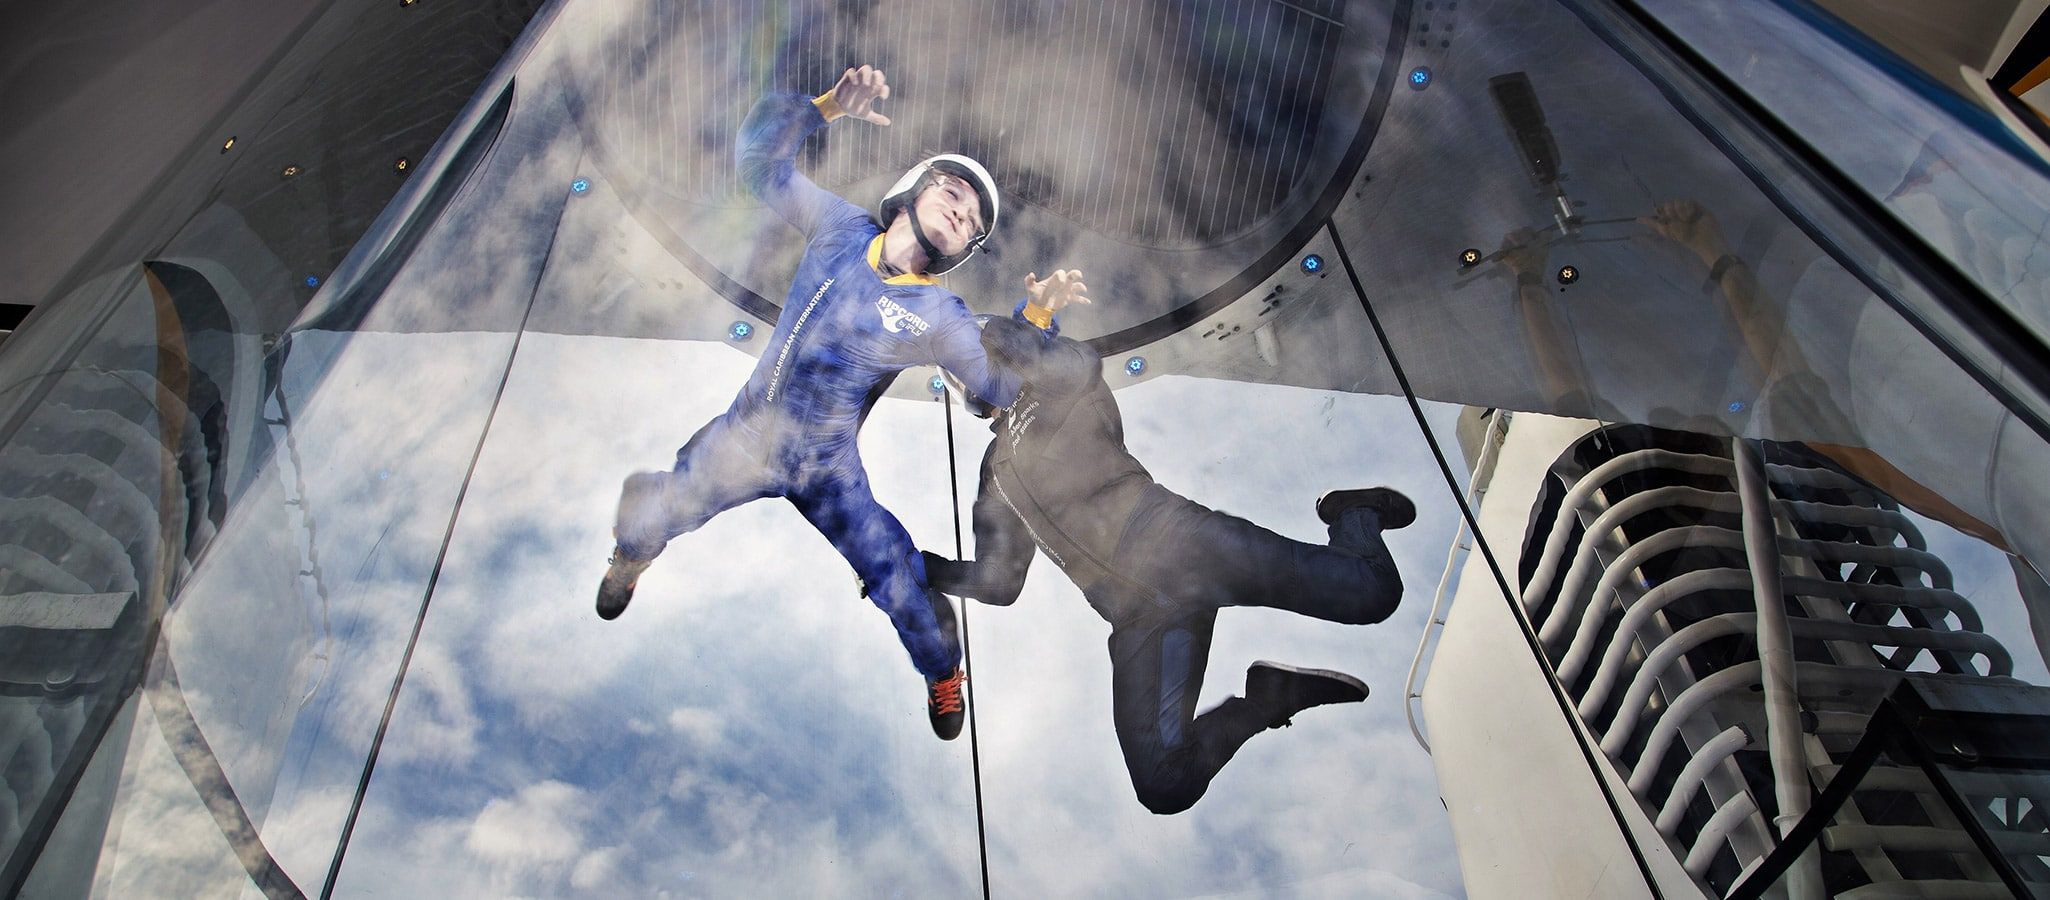 Huge fun and a one-of-a-kind opportunity: indoor skydiving.